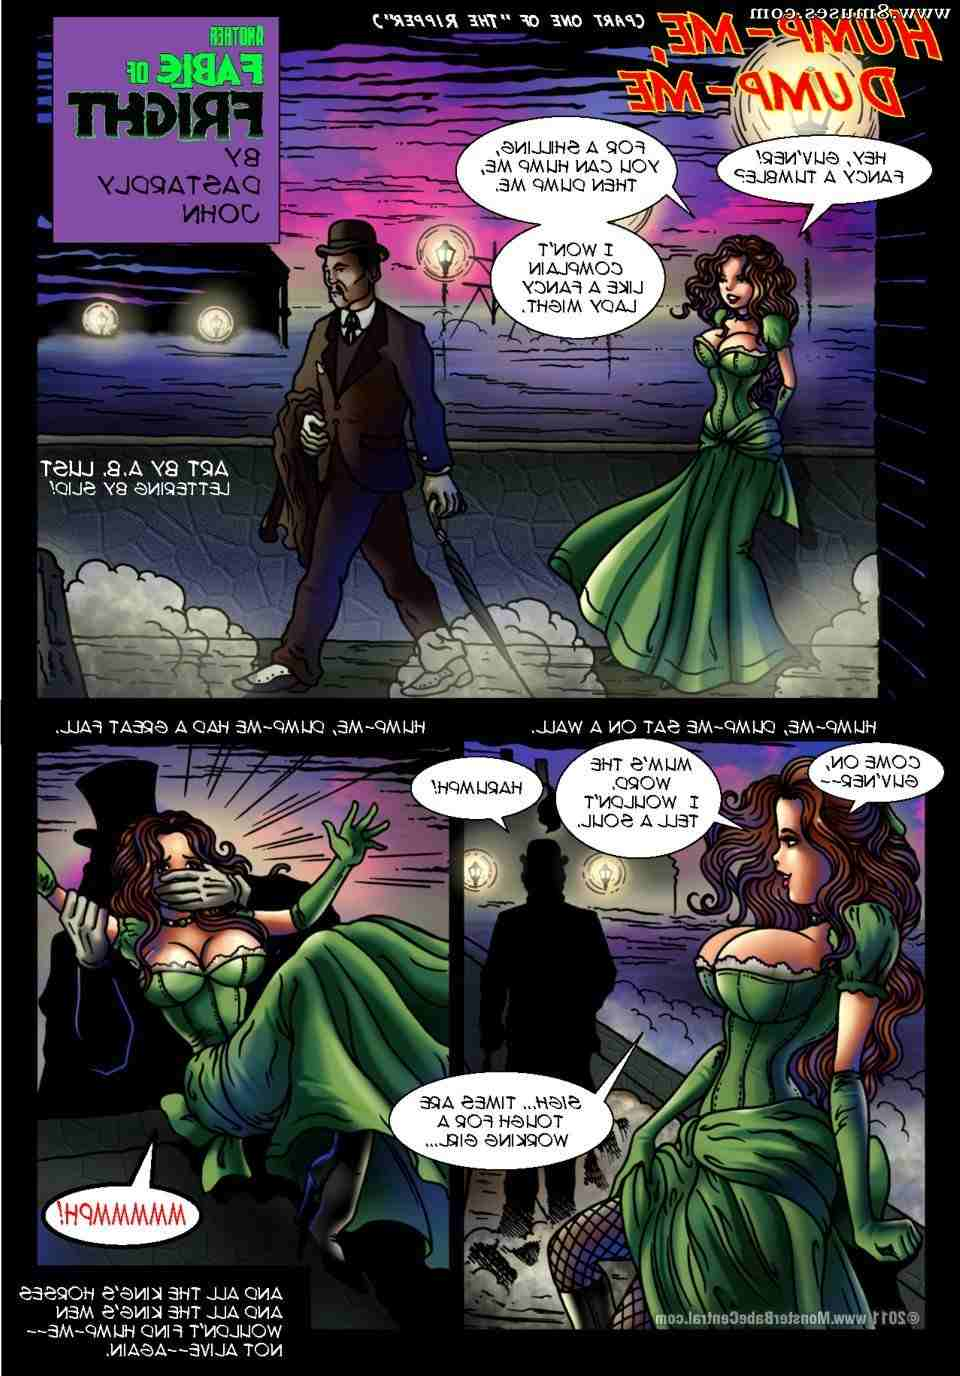 Central-Comics/Horror-Babe-Central/Fable-of-Fright Fable_of_Fright__8muses_-_Sex_and_Porn_Comics_167.jpg